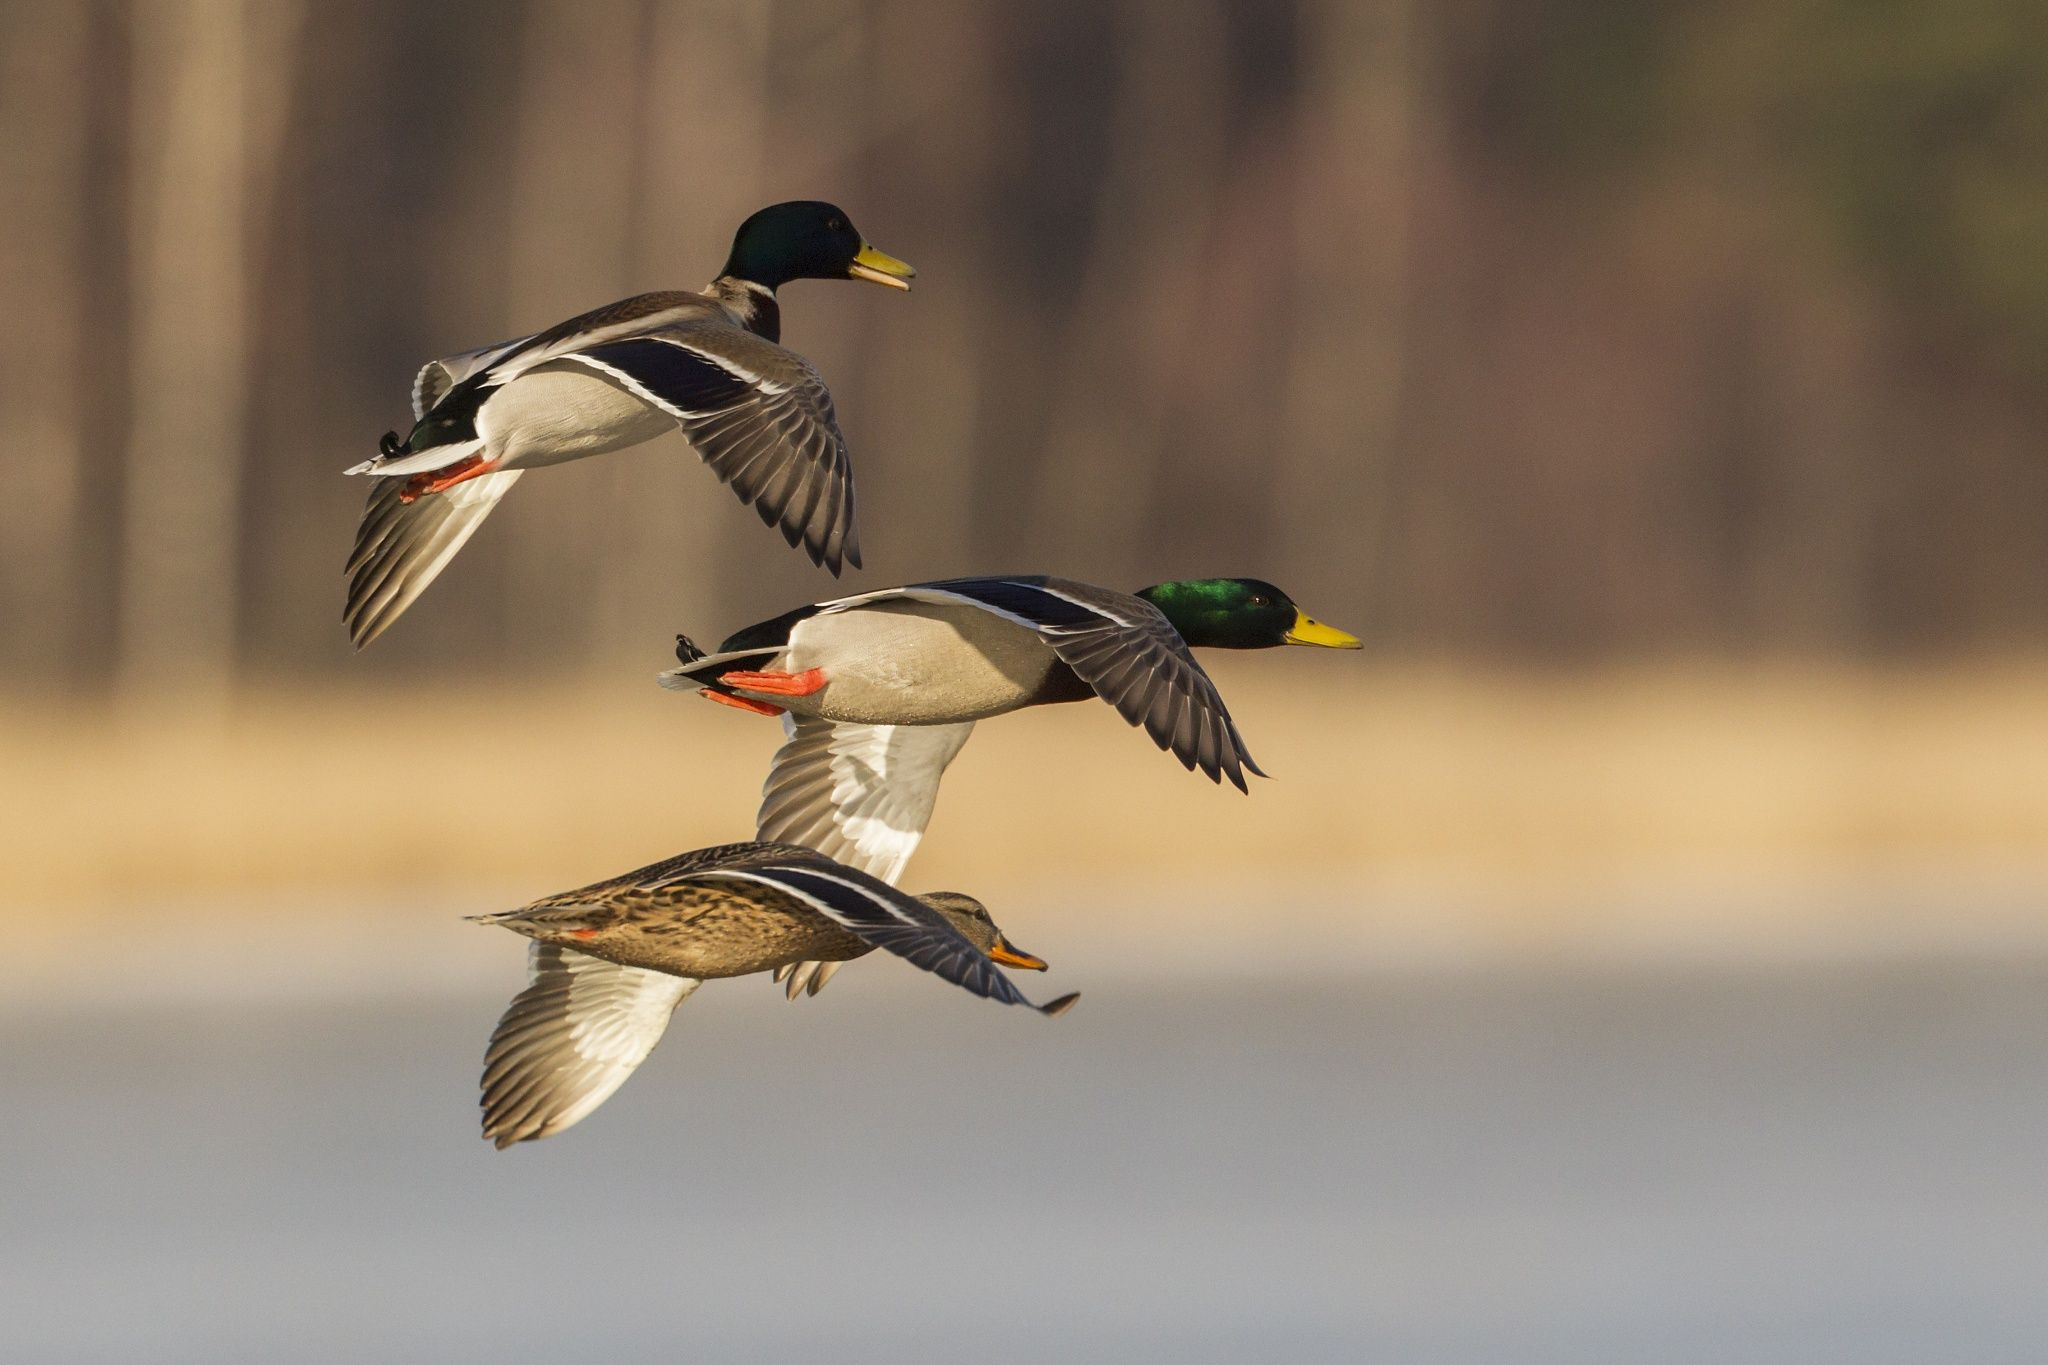 Mallards By Ari Seppa 500px Hunting Backgrounds Waterfowl Taxidermy Duck Hunting Boat